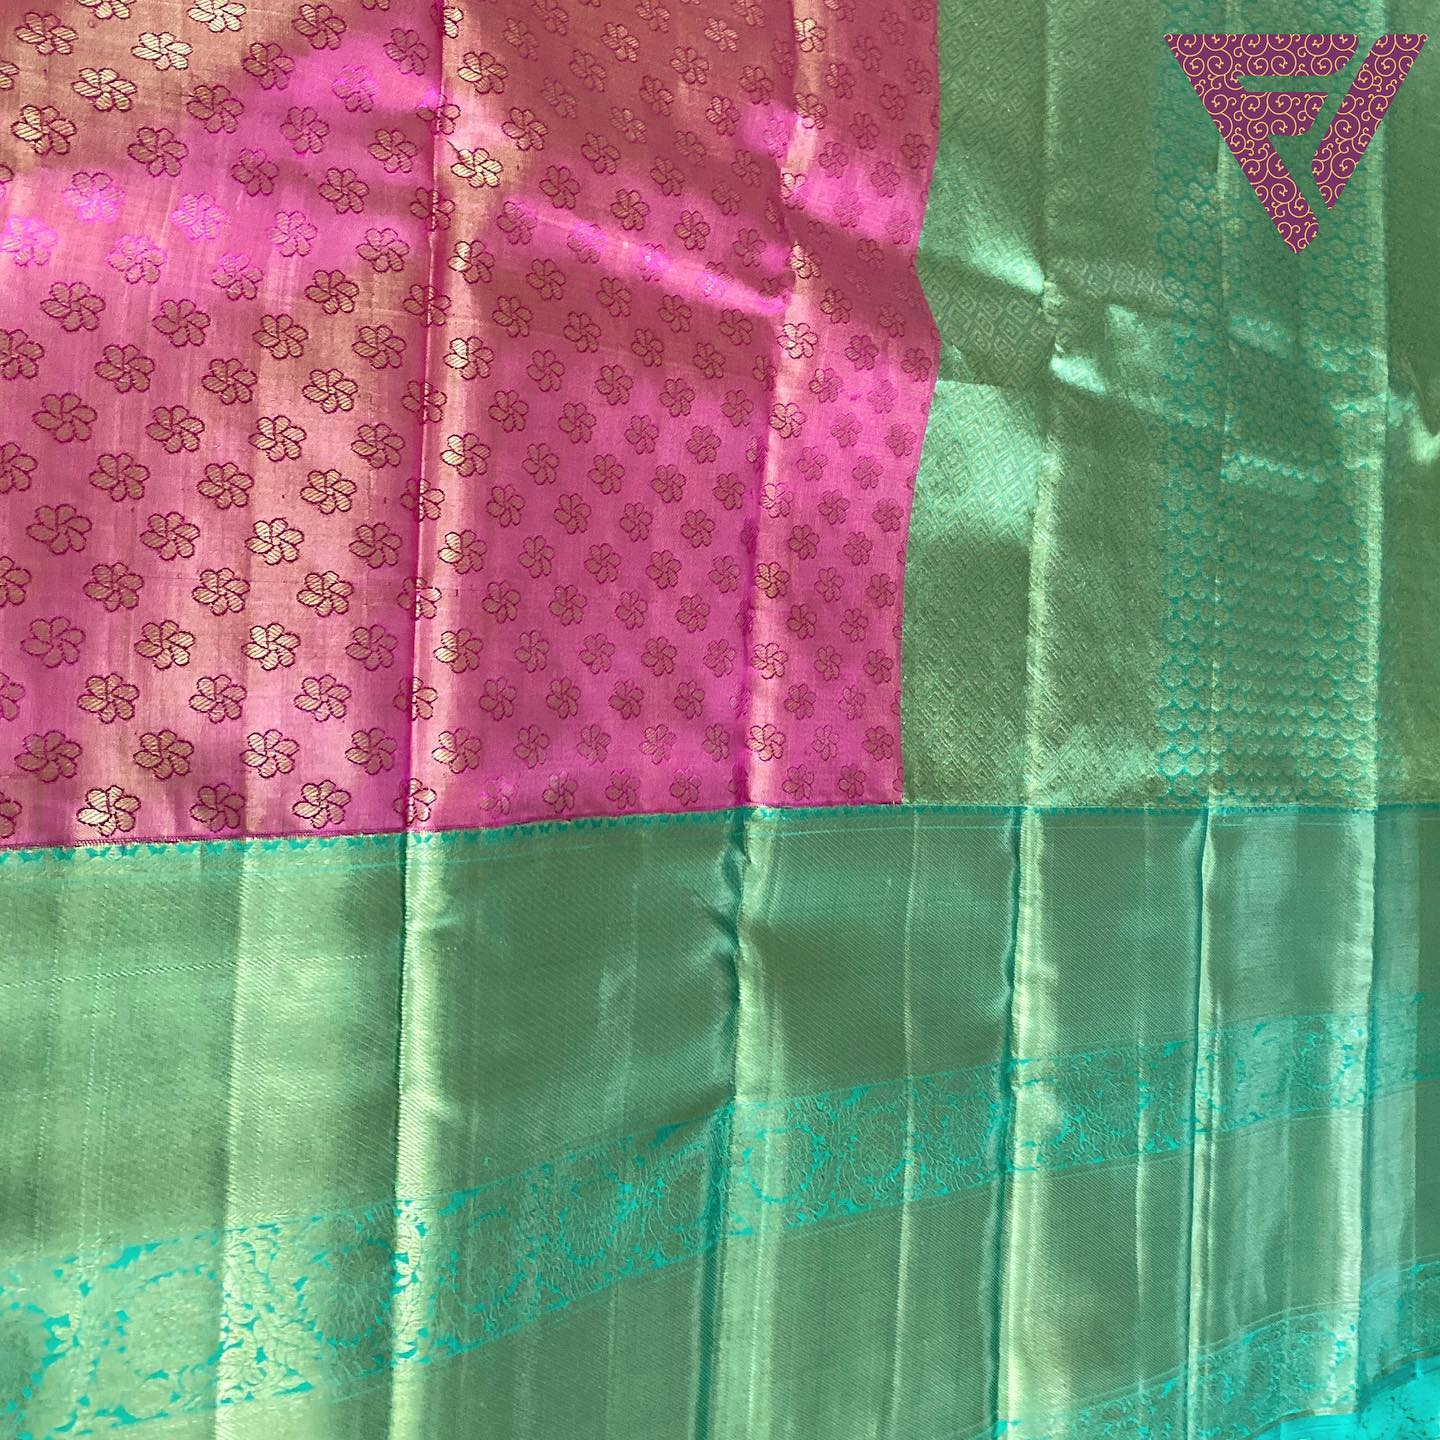 Pink and Teal KanchiPattu Saree